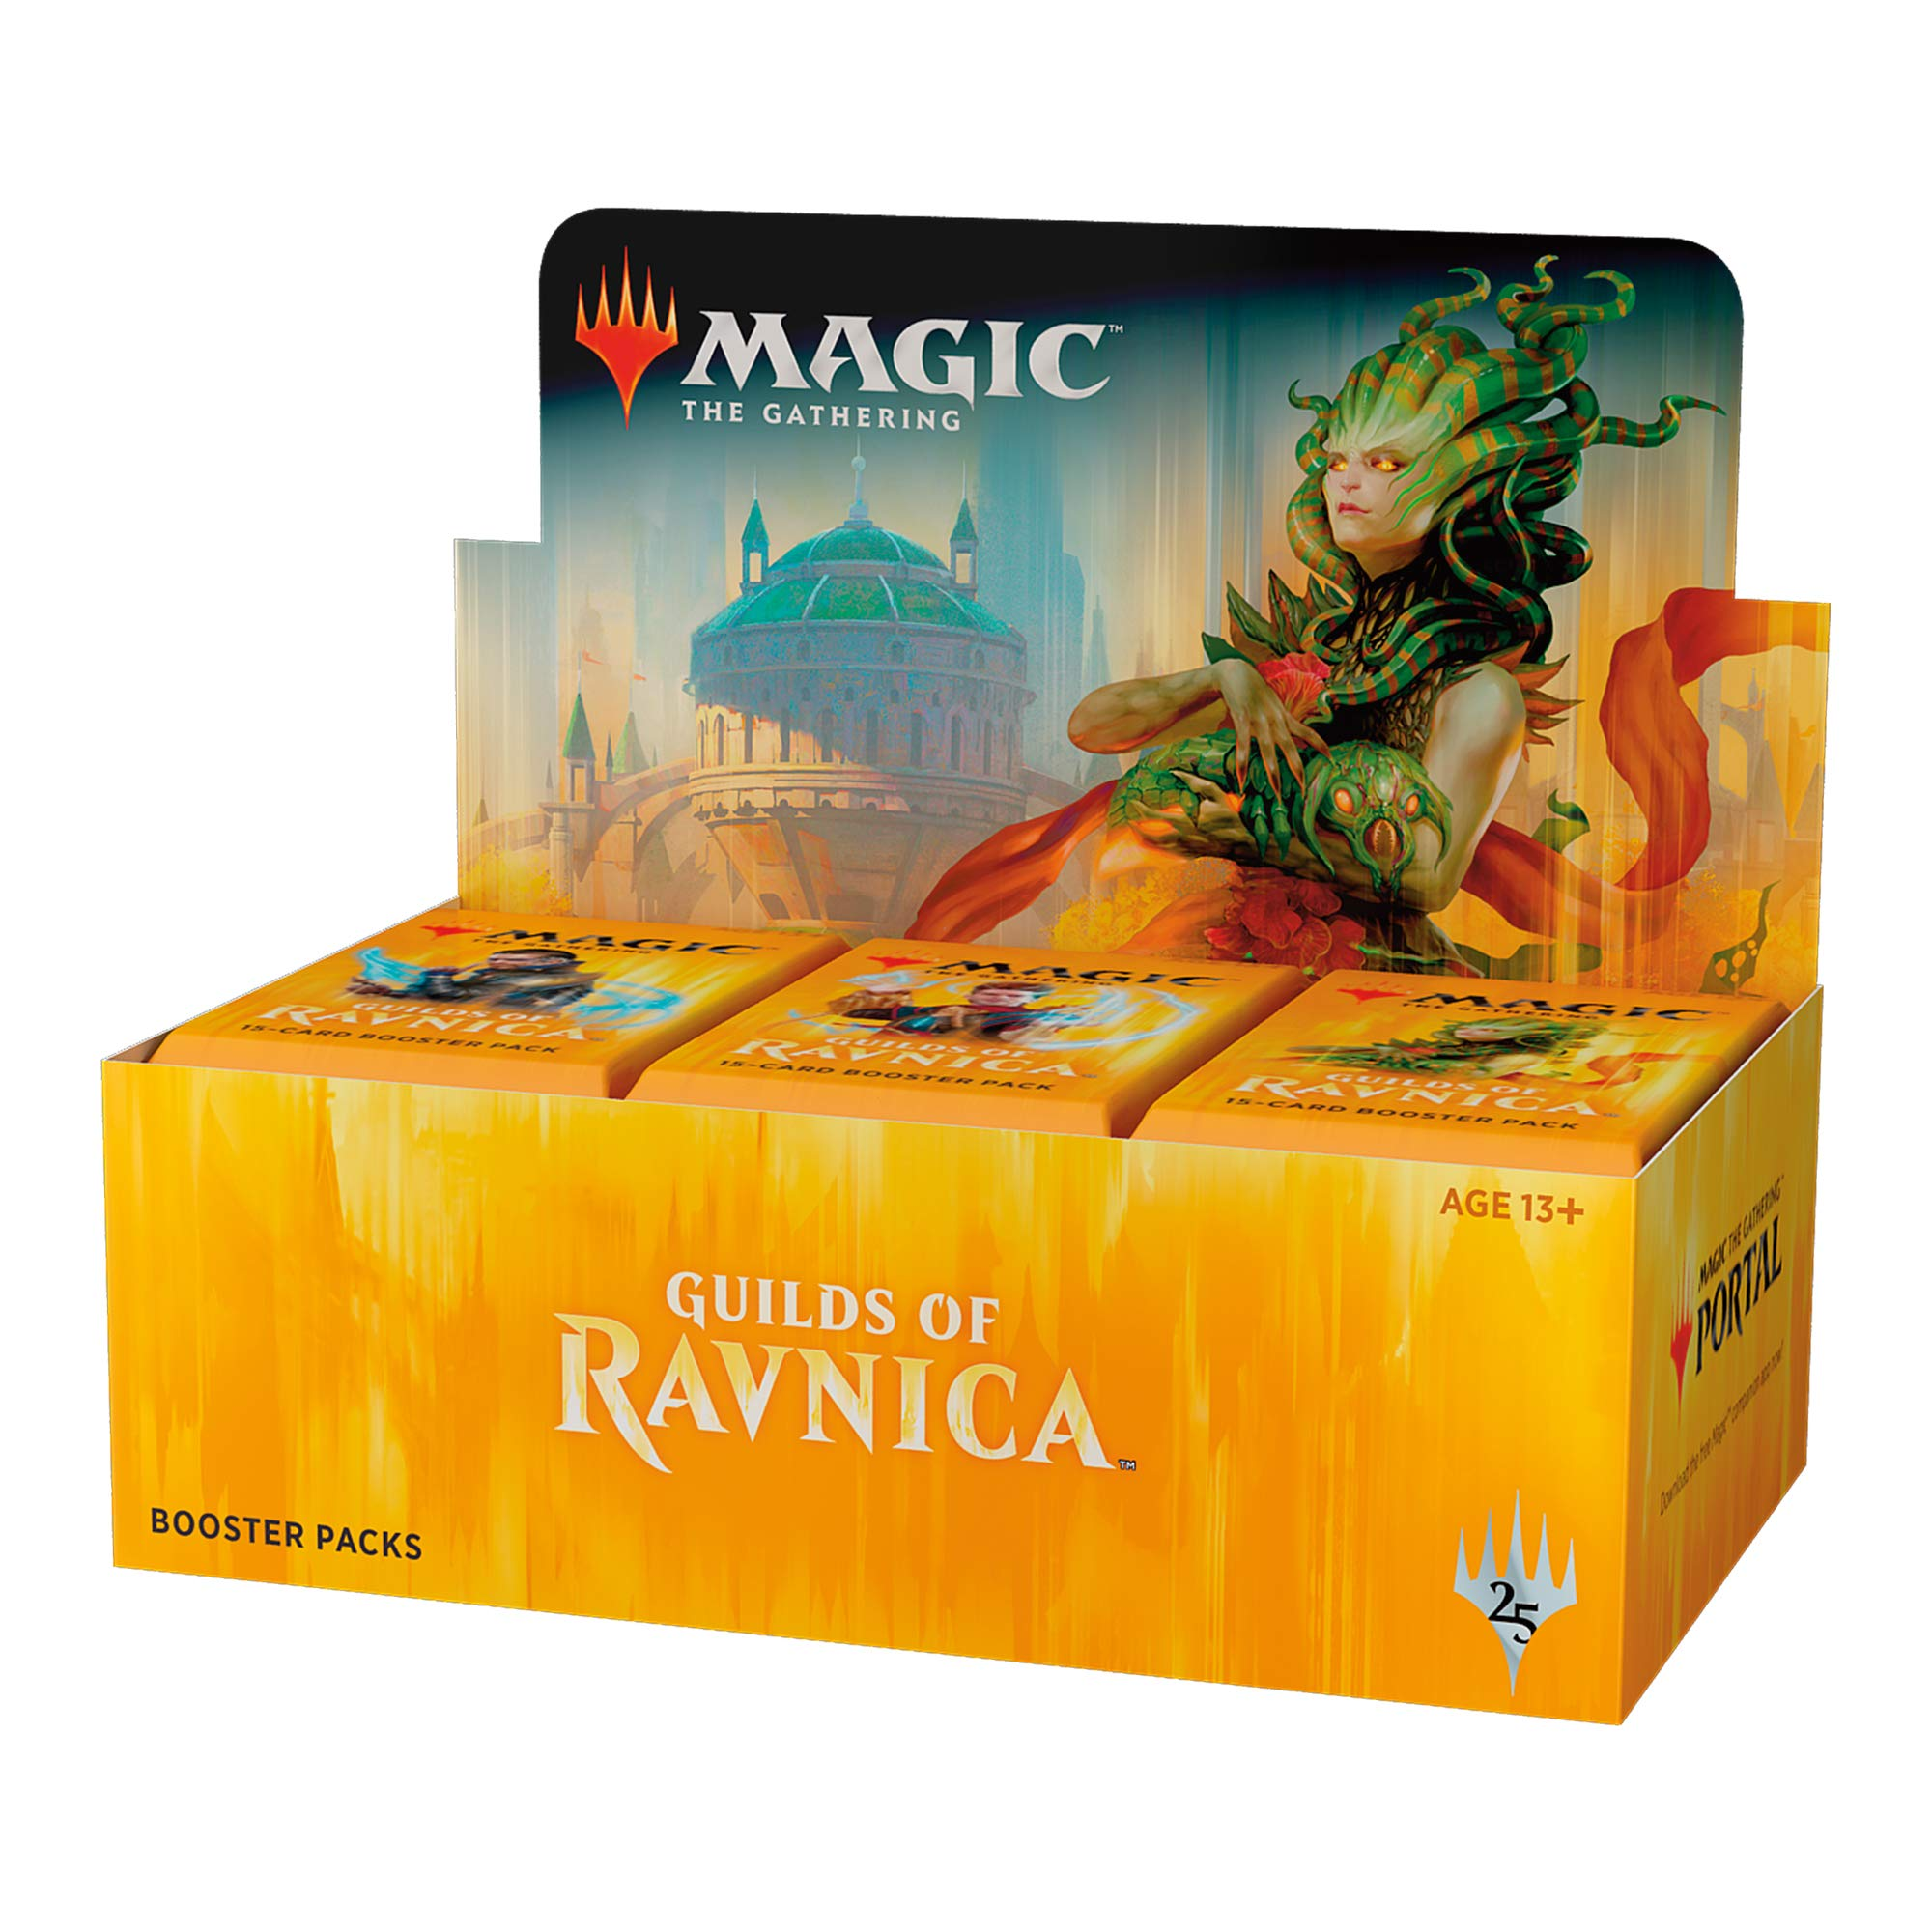 Magic: The Gathering Guilds of Ravnica Booster Box | 36 Booster Packs (540 Cards) by Magic: The Gathering (Image #1)